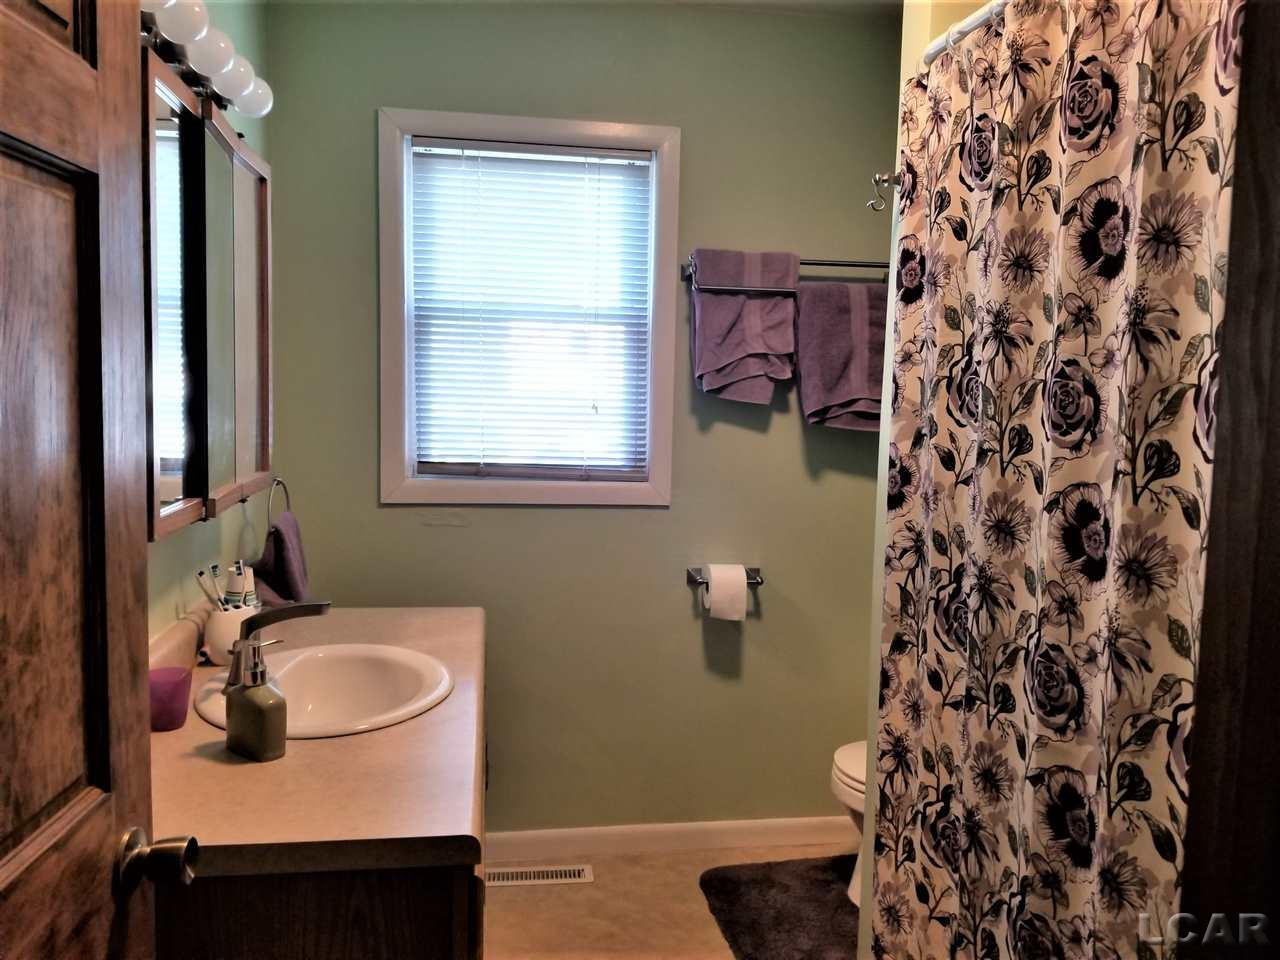 12241 Chicago Rd, Somerset Twp, Michigan 49249, 3 Bedrooms Bedrooms, ,1 BathroomBathrooms,Residential,For Sale,Chicago Rd,50021920